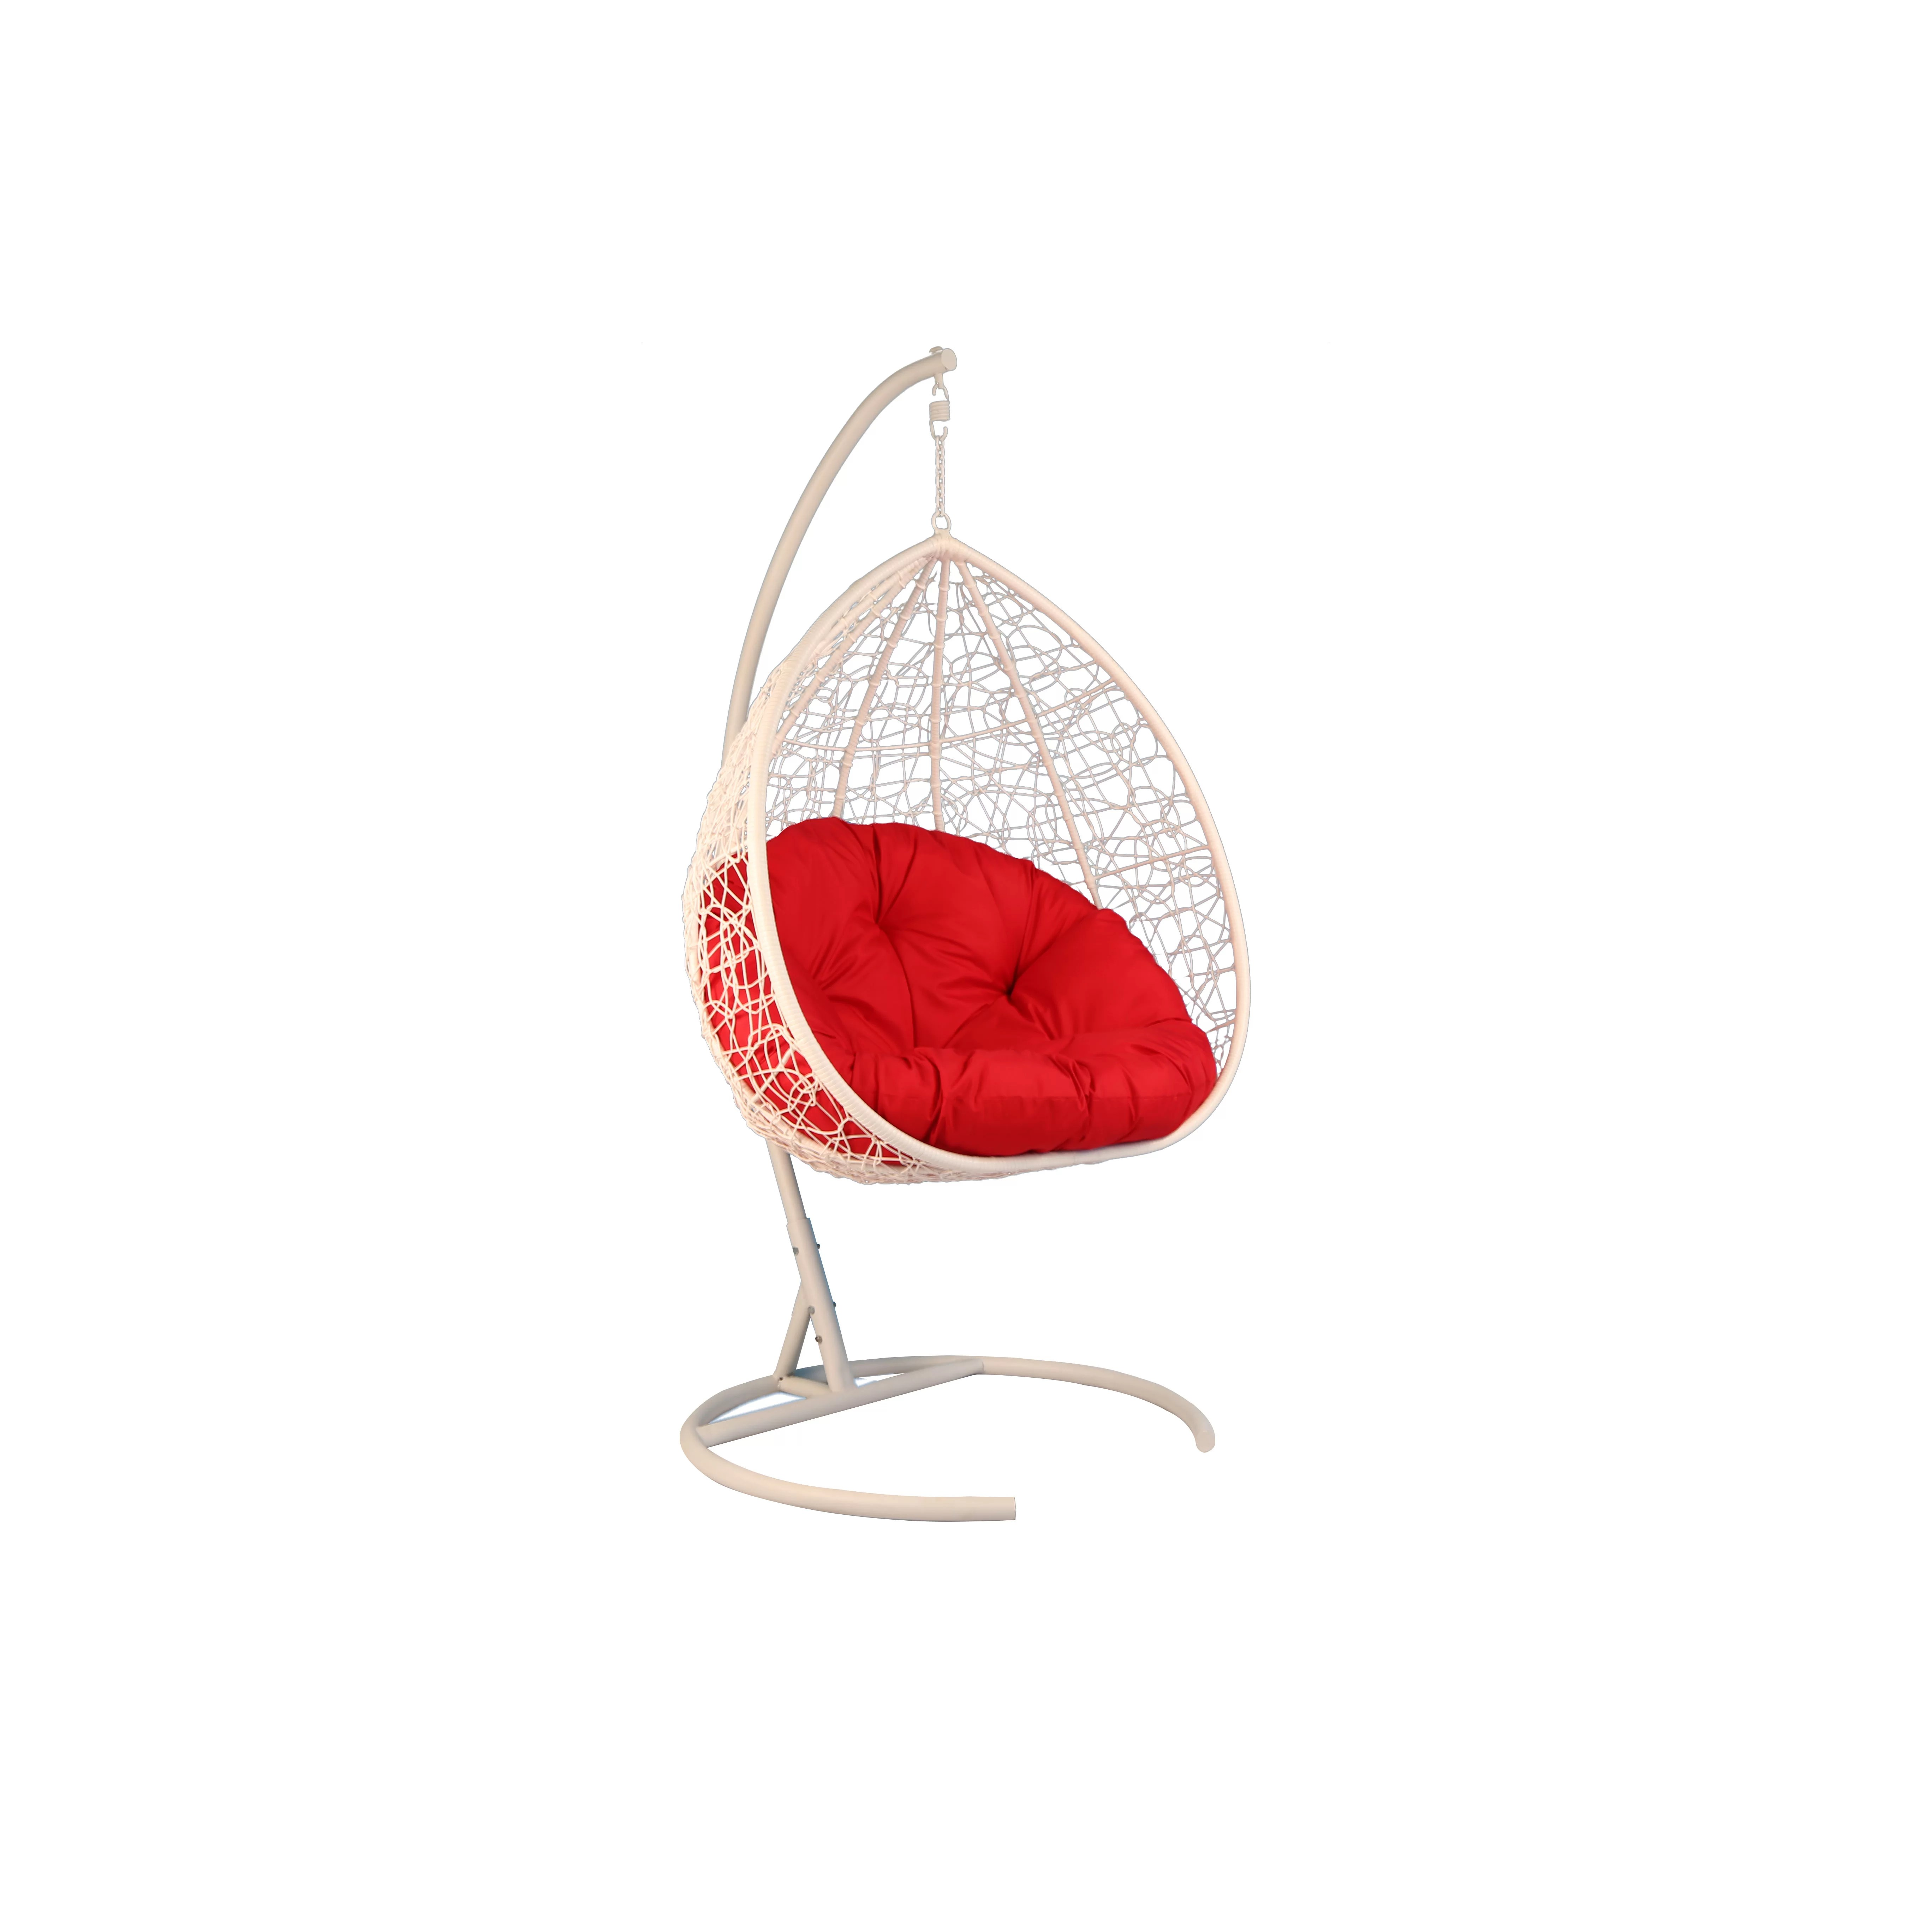 Egg Swing Chair Baner Garden Oval Egg Hanging Patio Swing Chair Wayfair Ca